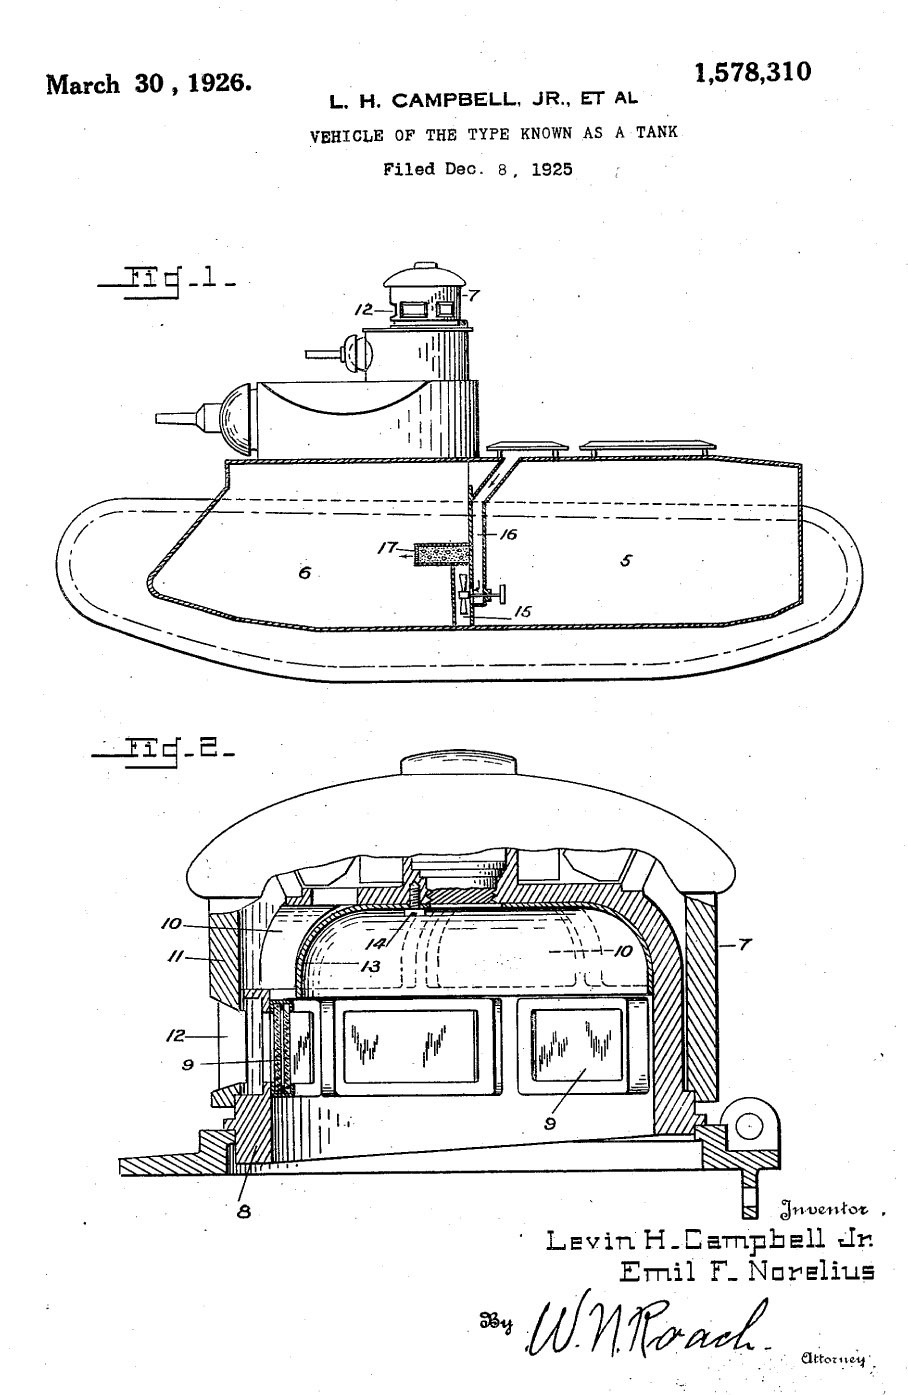 ​Joint patent for the Medium Tank M1921 design. Levin H. Campbell Jr. was Norelius' co-author, another key figure in the American armed forces in the WWI years - Medium Tank T1E1: Britain's Heir | Warspot.net